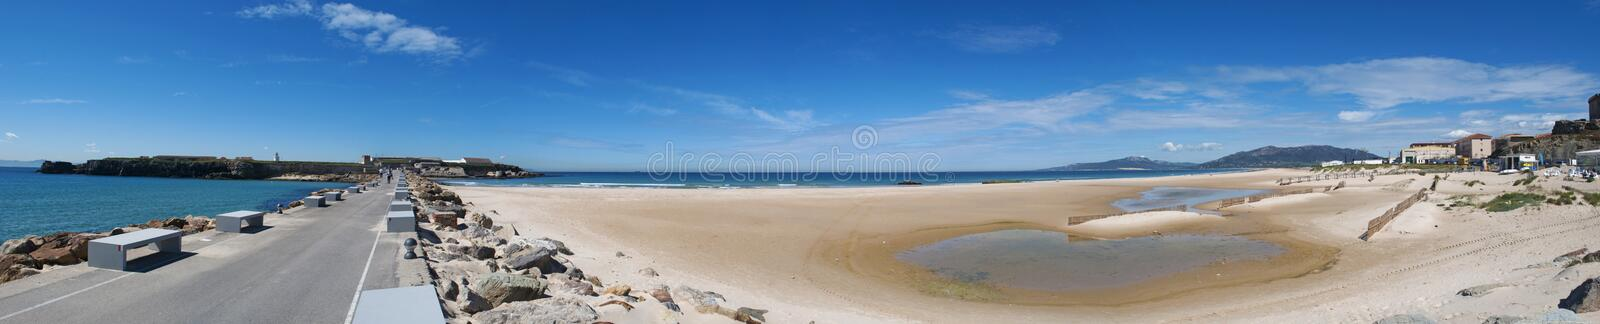 Tarifa, Spain, Andalusia, Iberian Peninsula, Europe. Spain, 23/04/2016: view of Playa de los Lances, the biggest beach of Tarifa, town on the southernmost coast royalty free stock photo